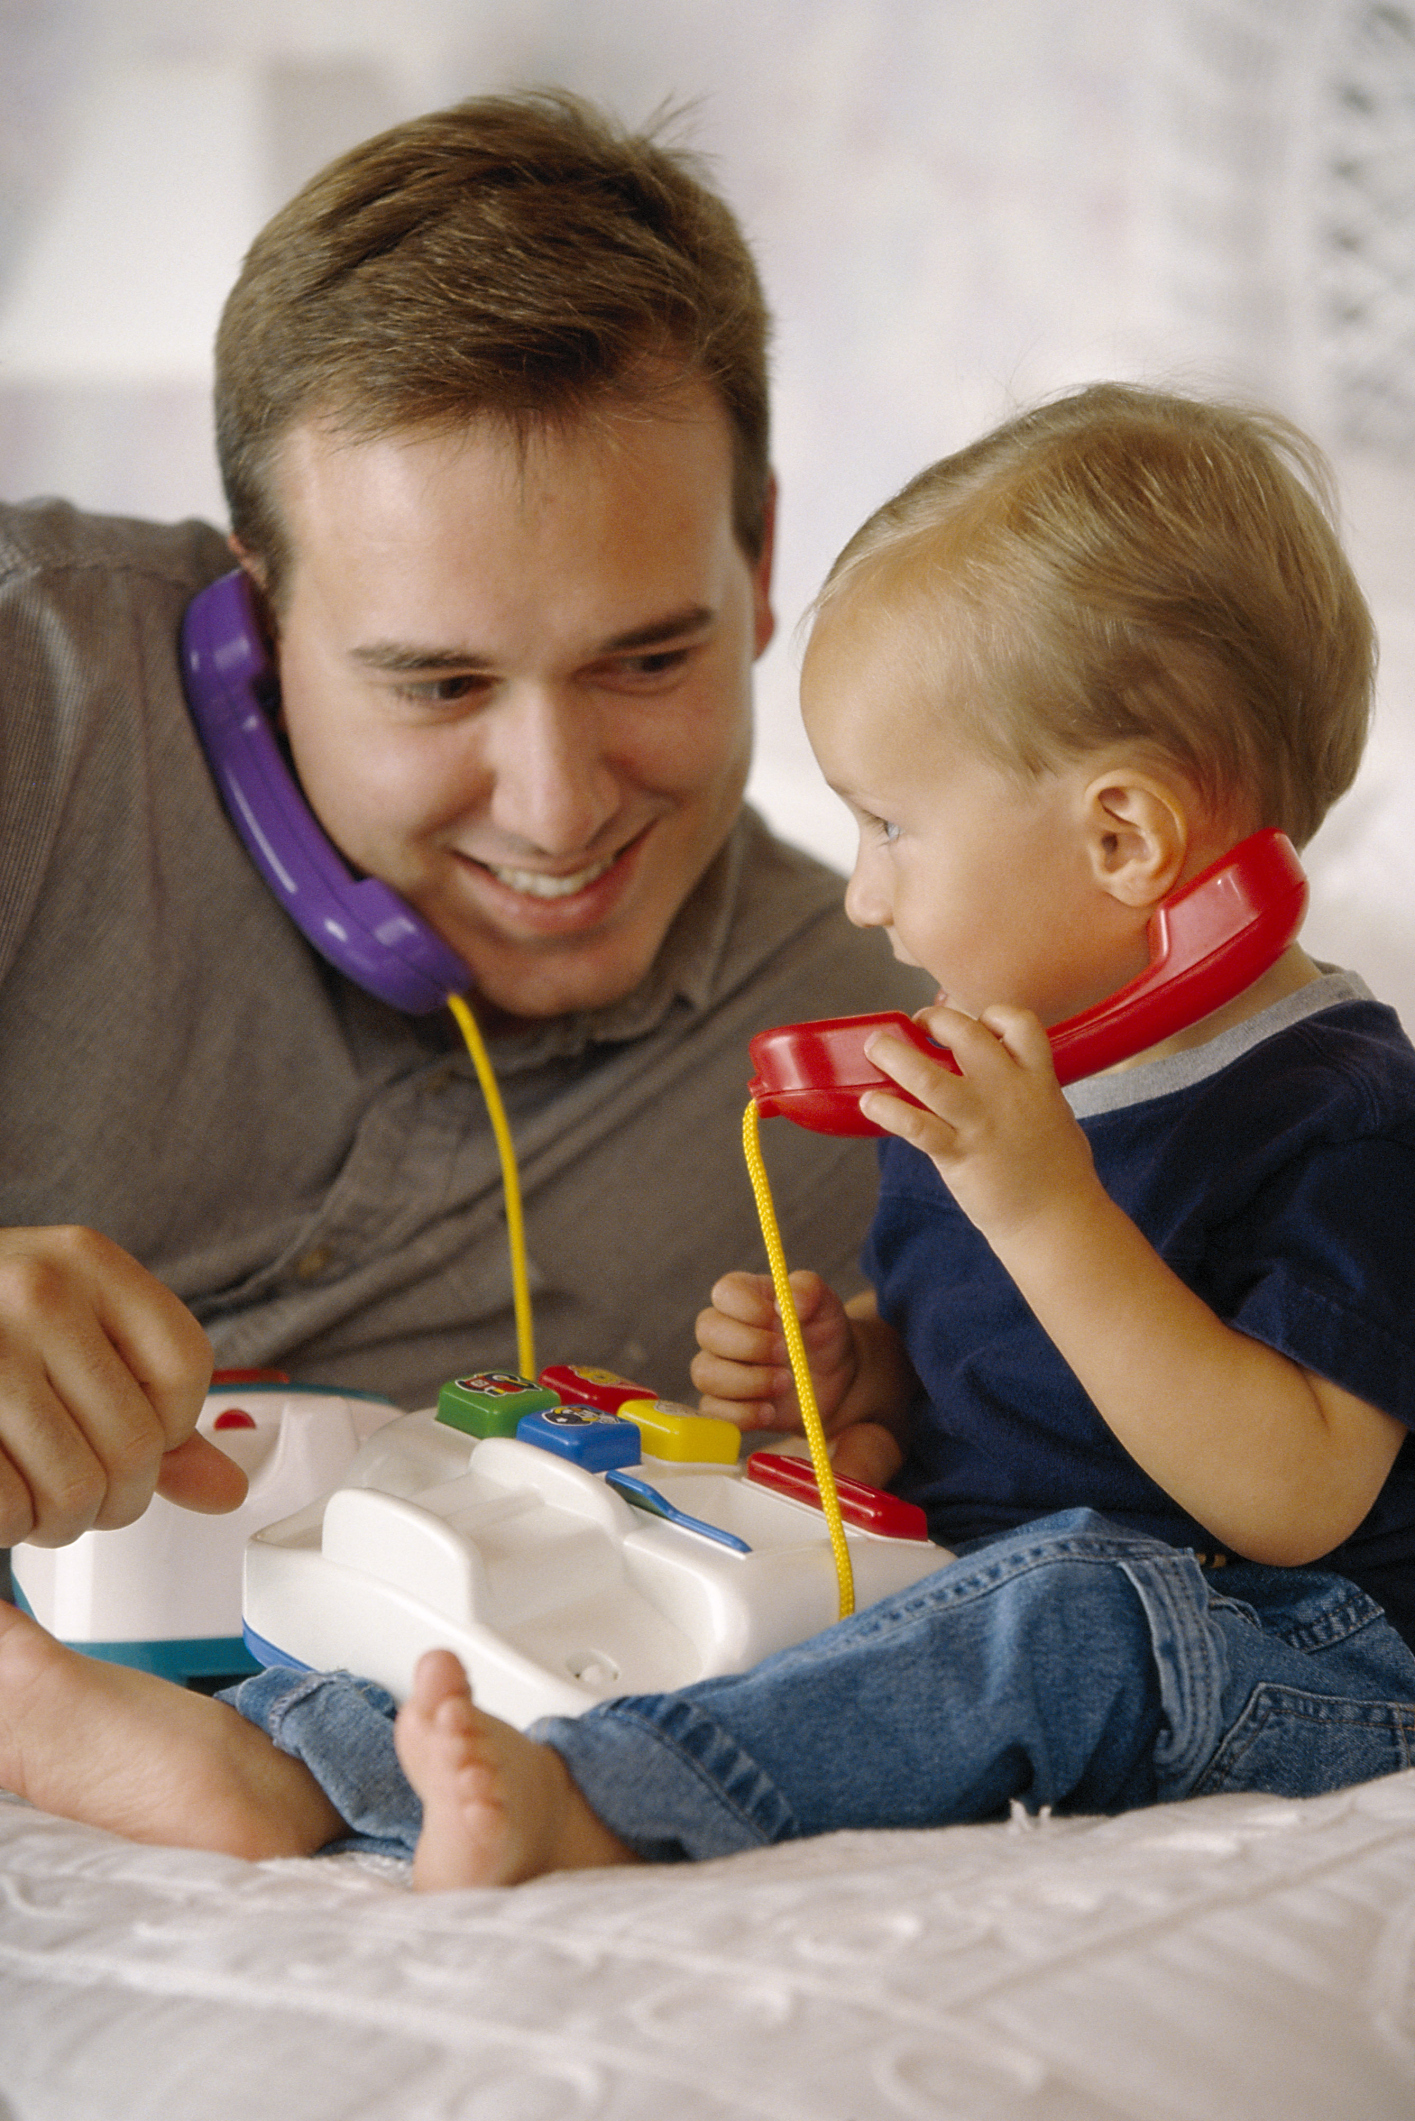 Games to Play With 1- to 2-Year-Old Kids